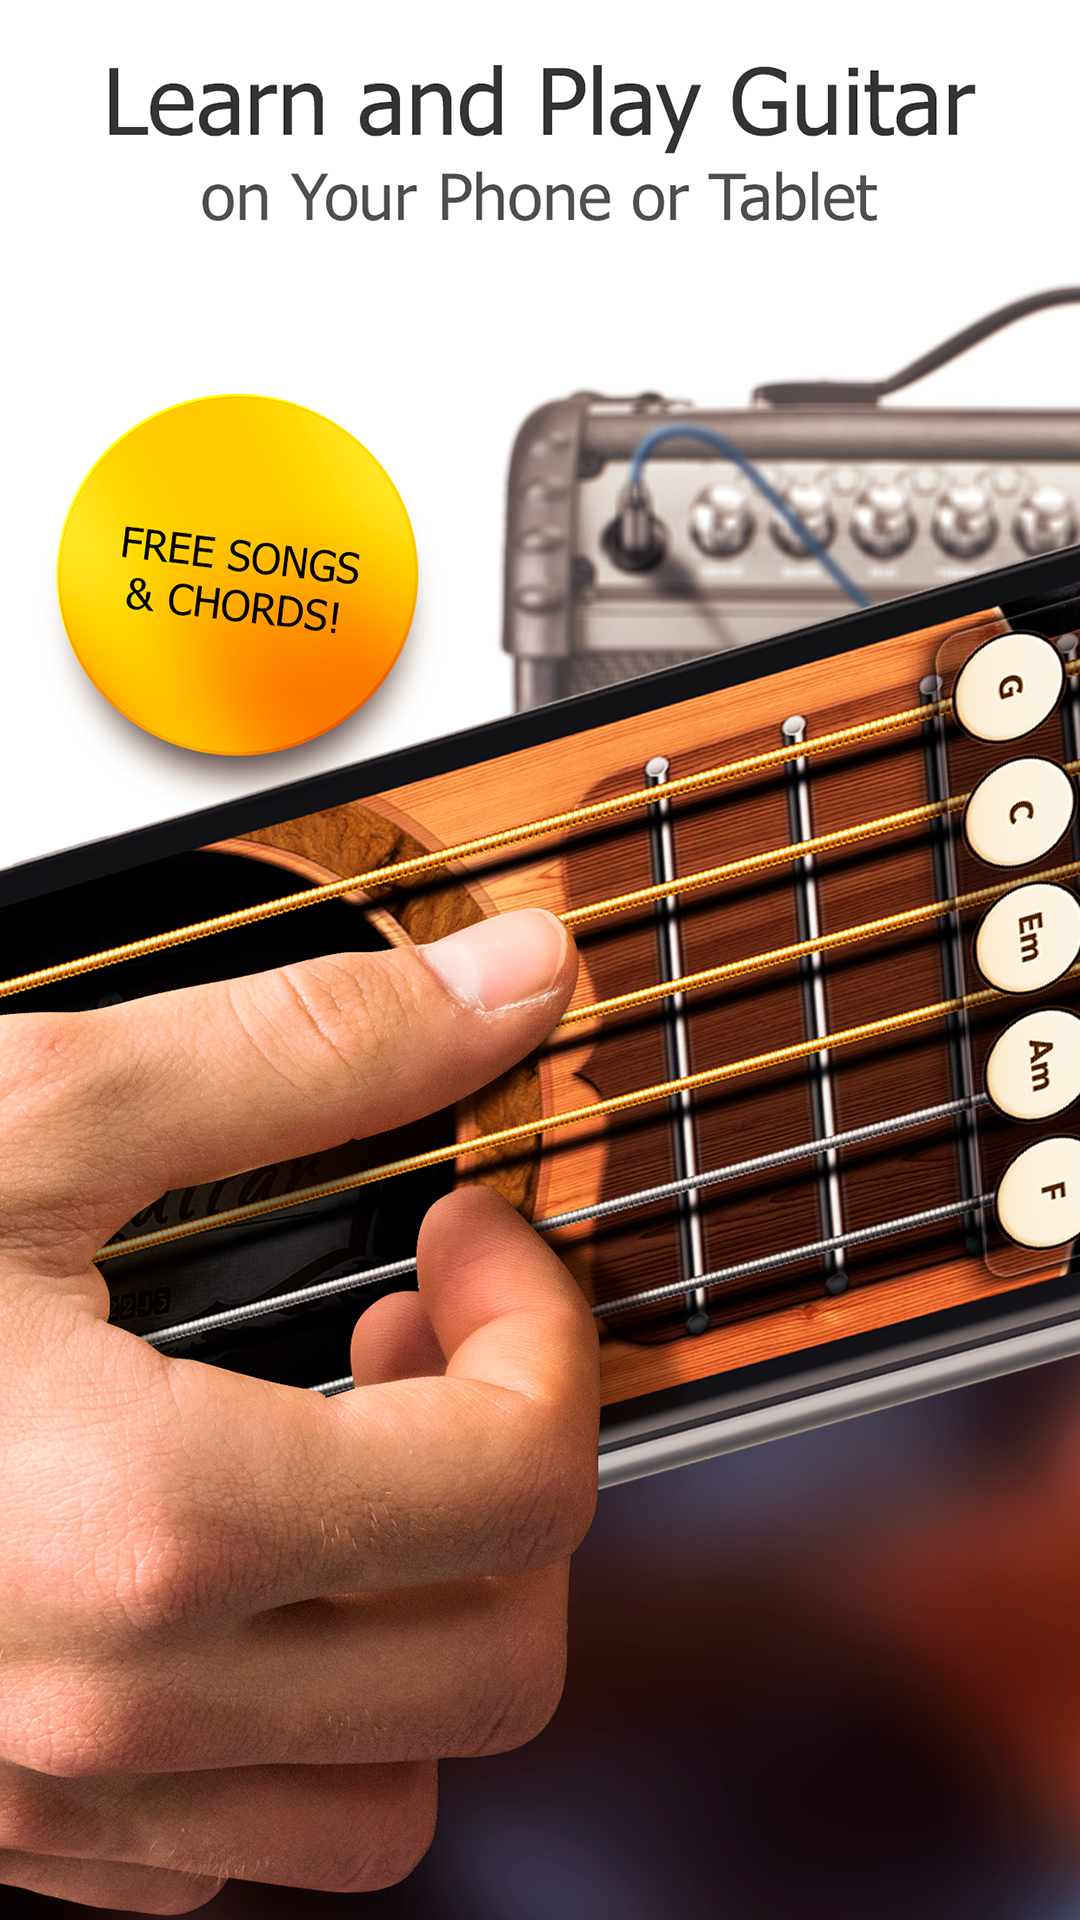 real guitar free chords tabs simulator games